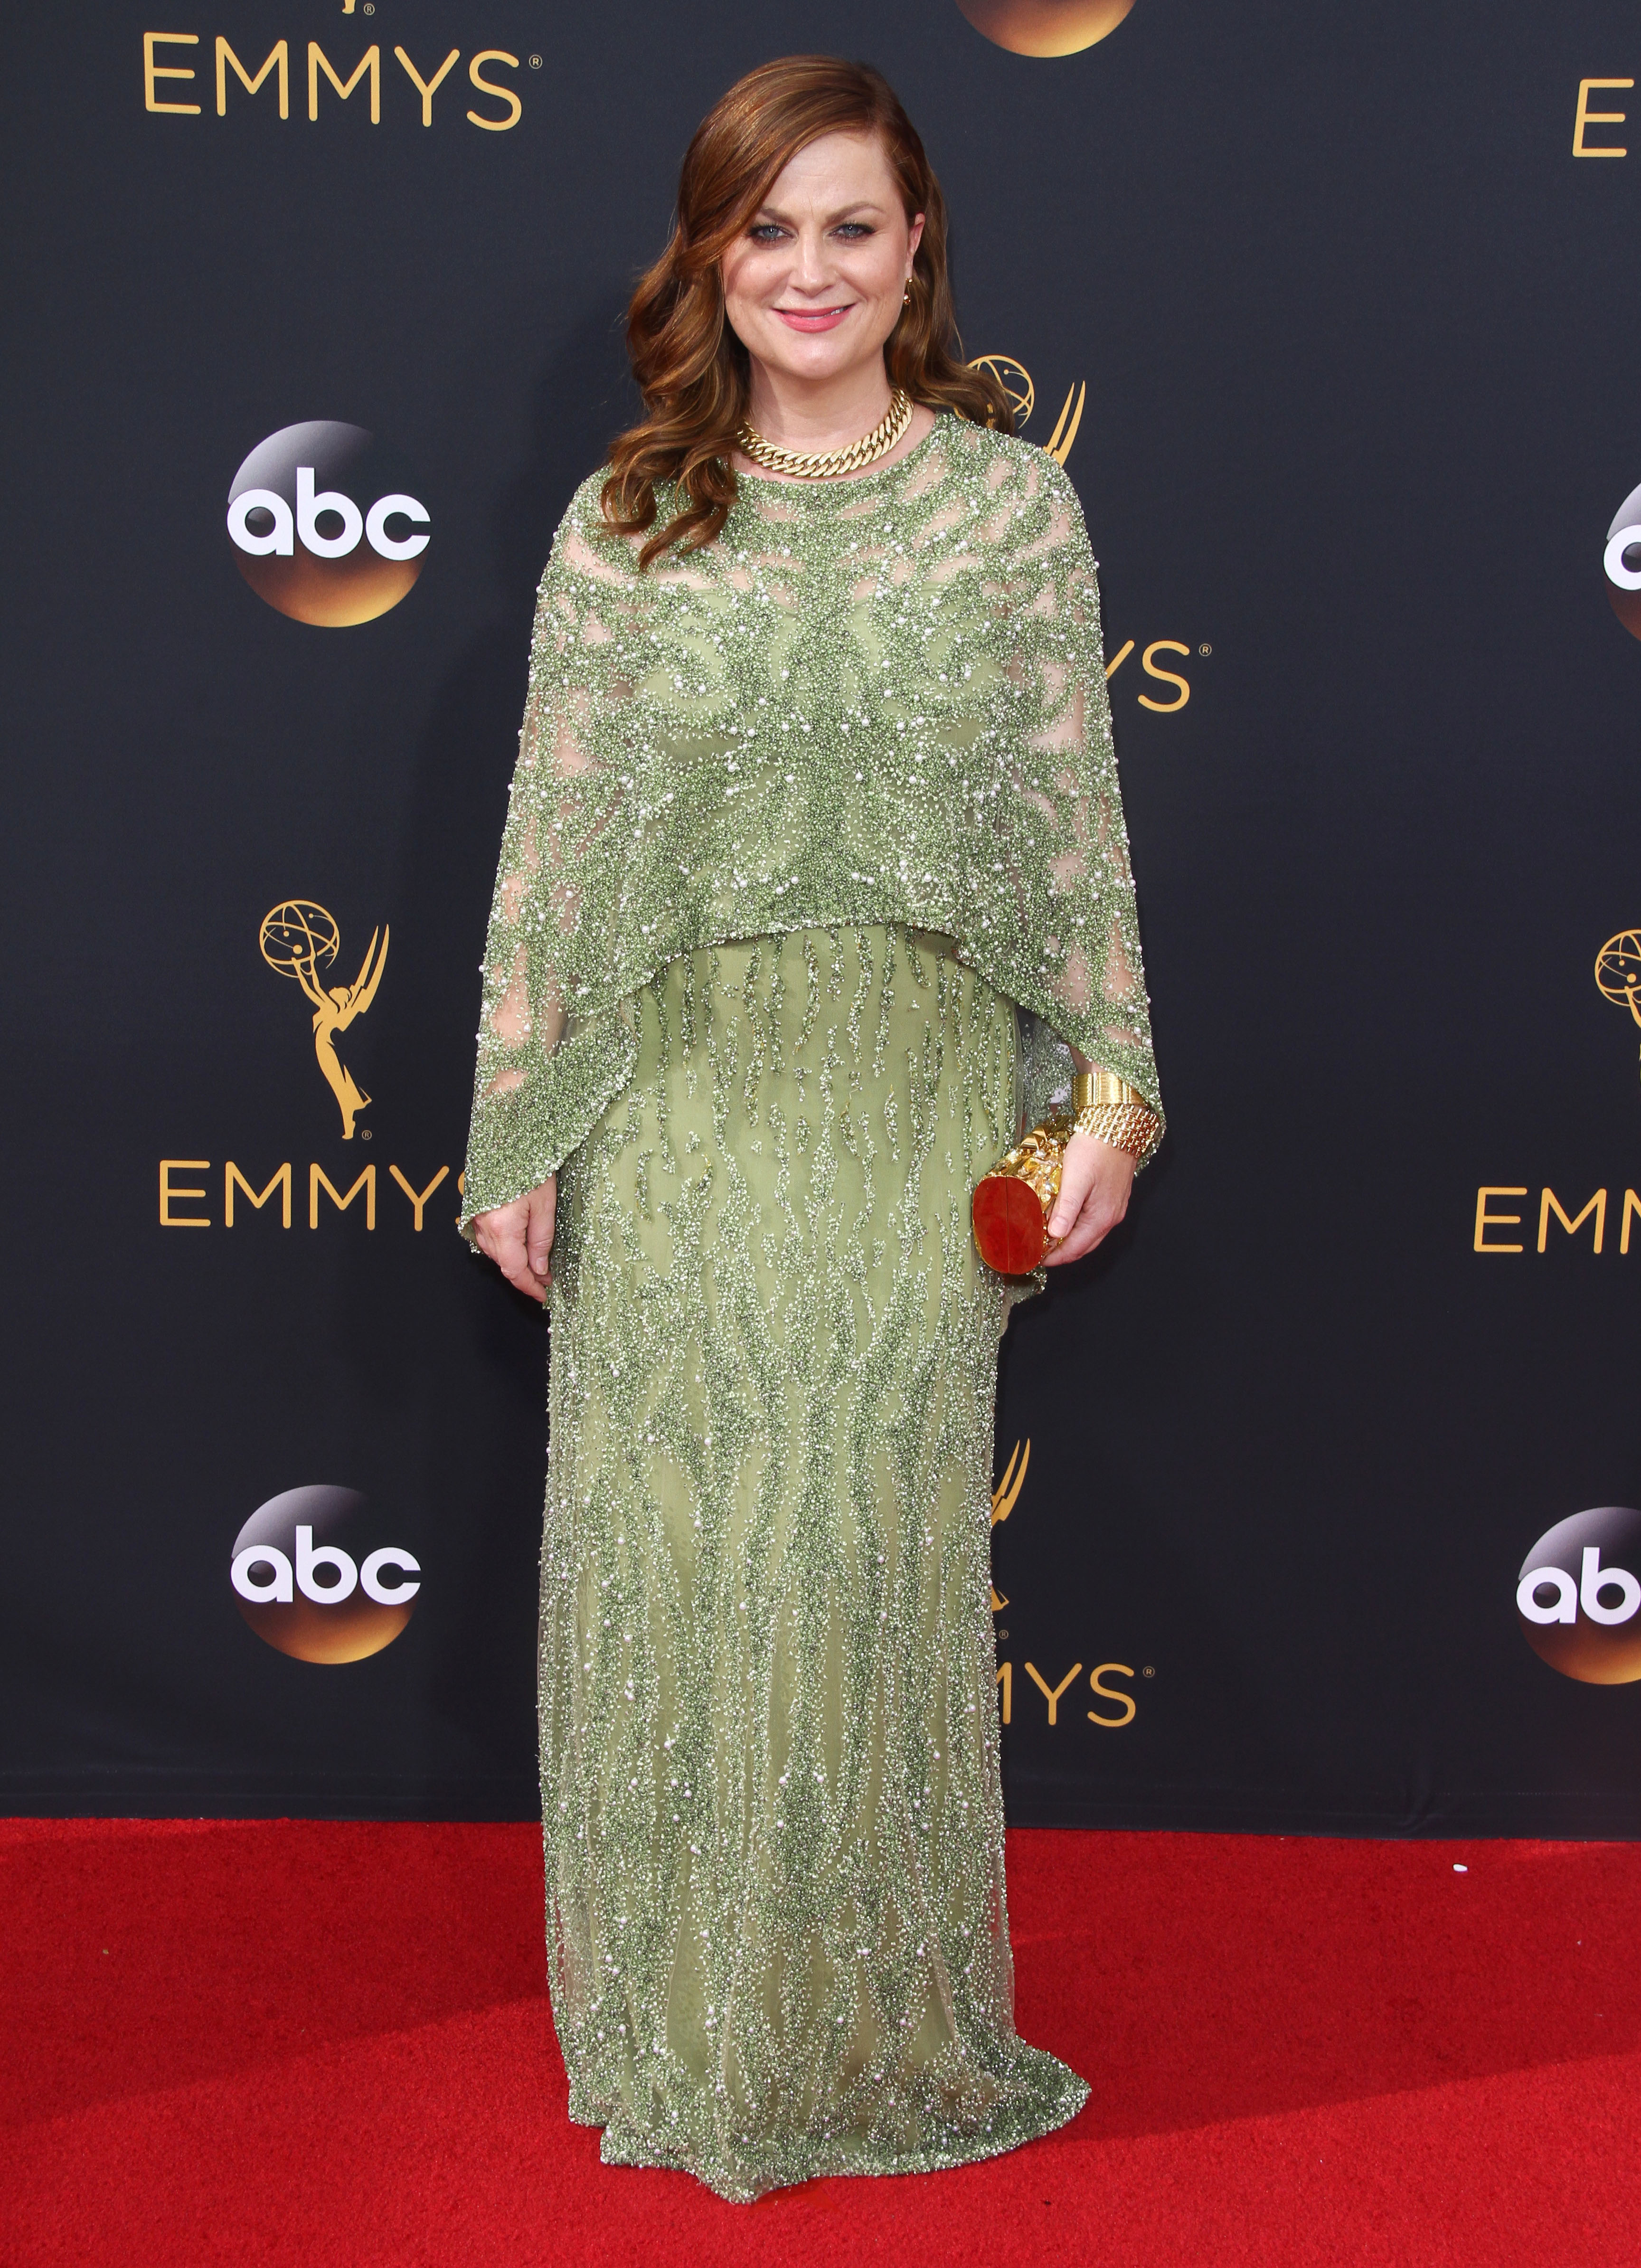 Emmys Fug Carpet: Amy Poehler in Pamella Roland